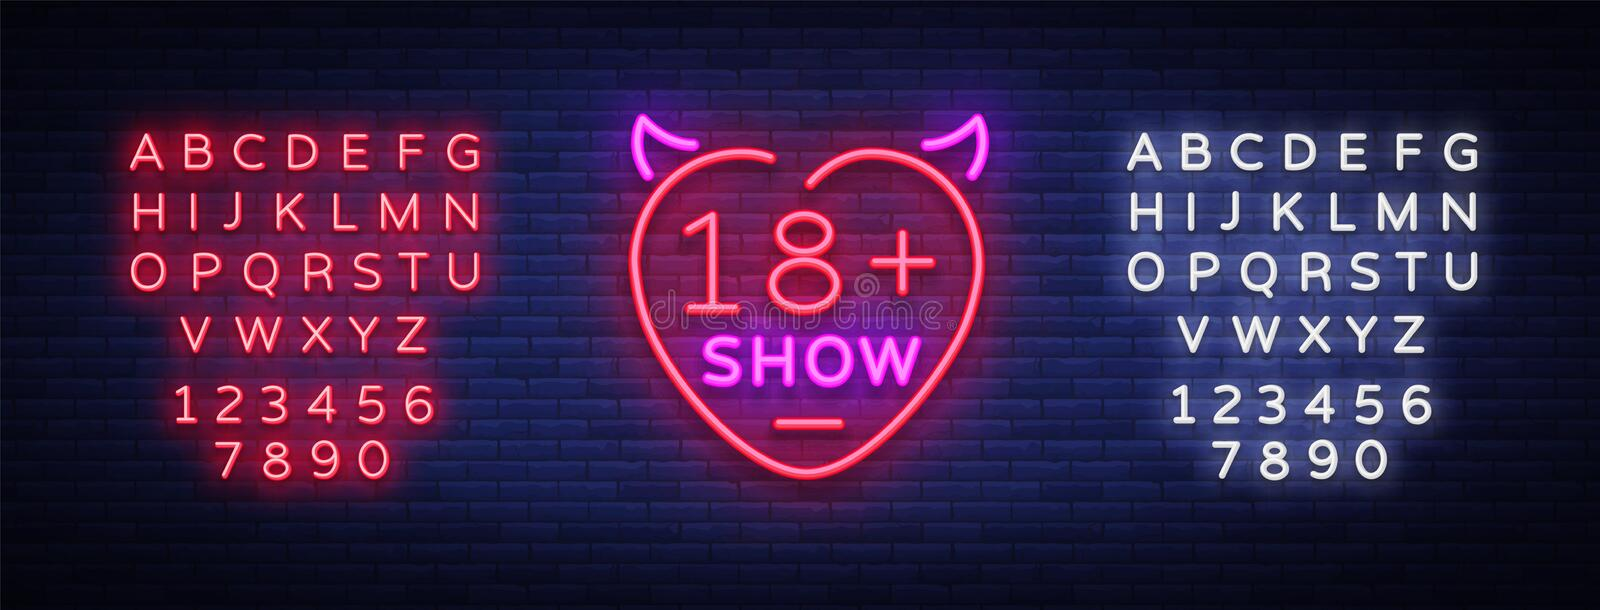 Sex show neon sign. Bright night banner in neon style, neon billboards for advertising sex shows, sex shop, intimate stock illustration